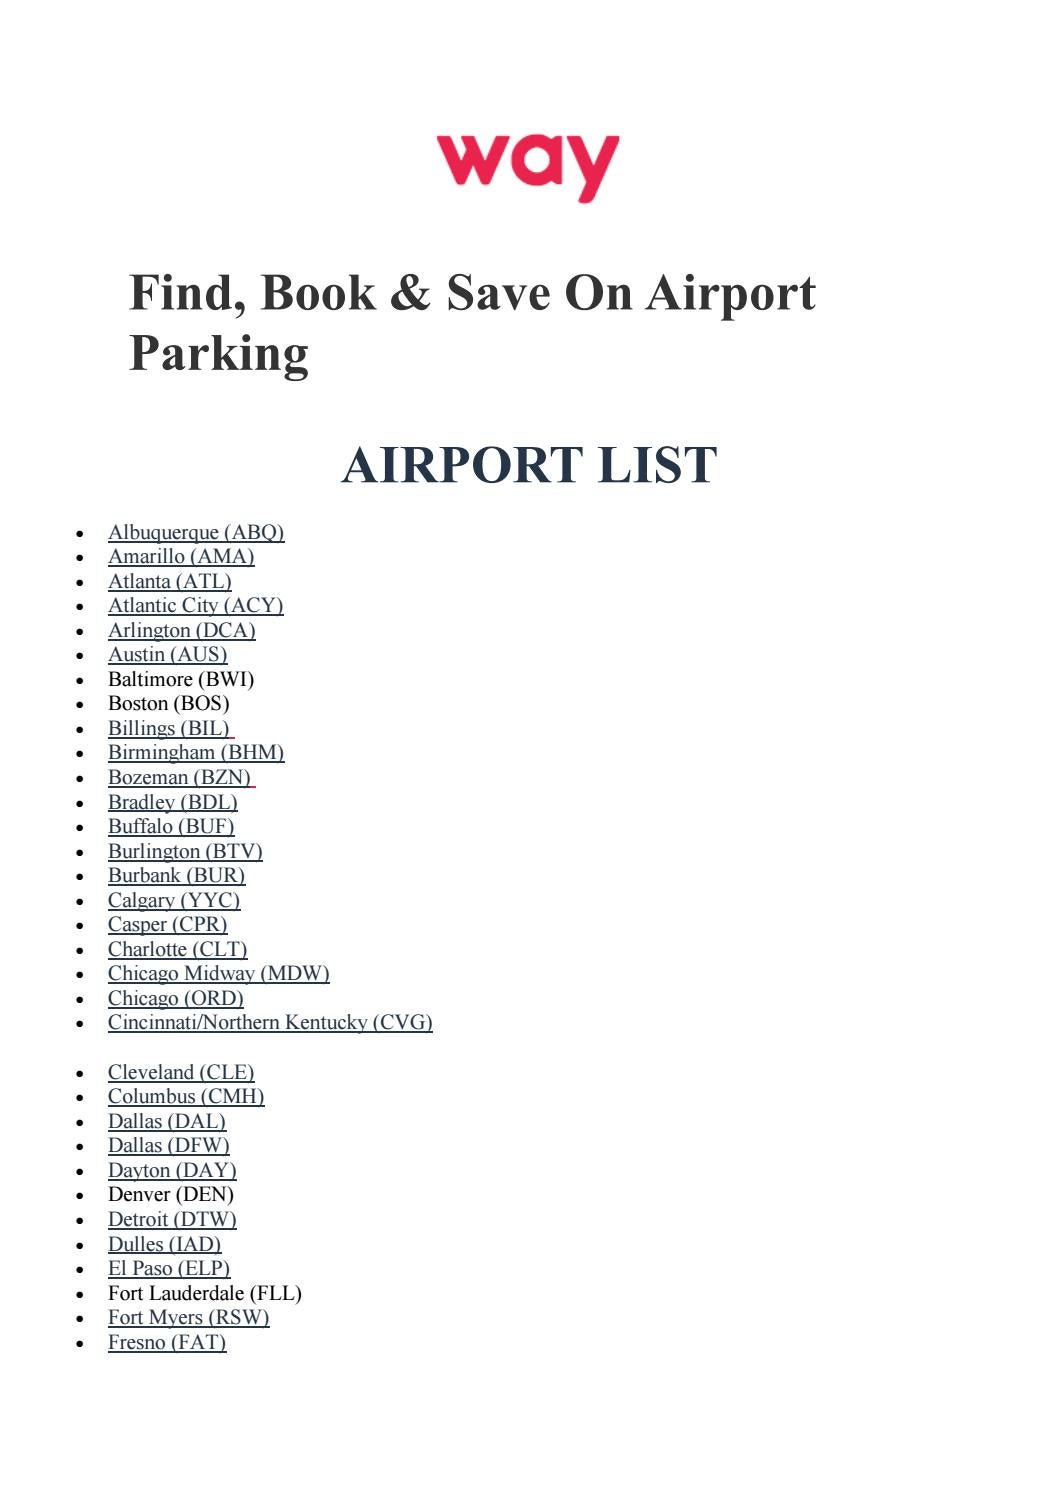 Pdx Long Term Parking >> Airport Parking With Way By Way Usa Issuu